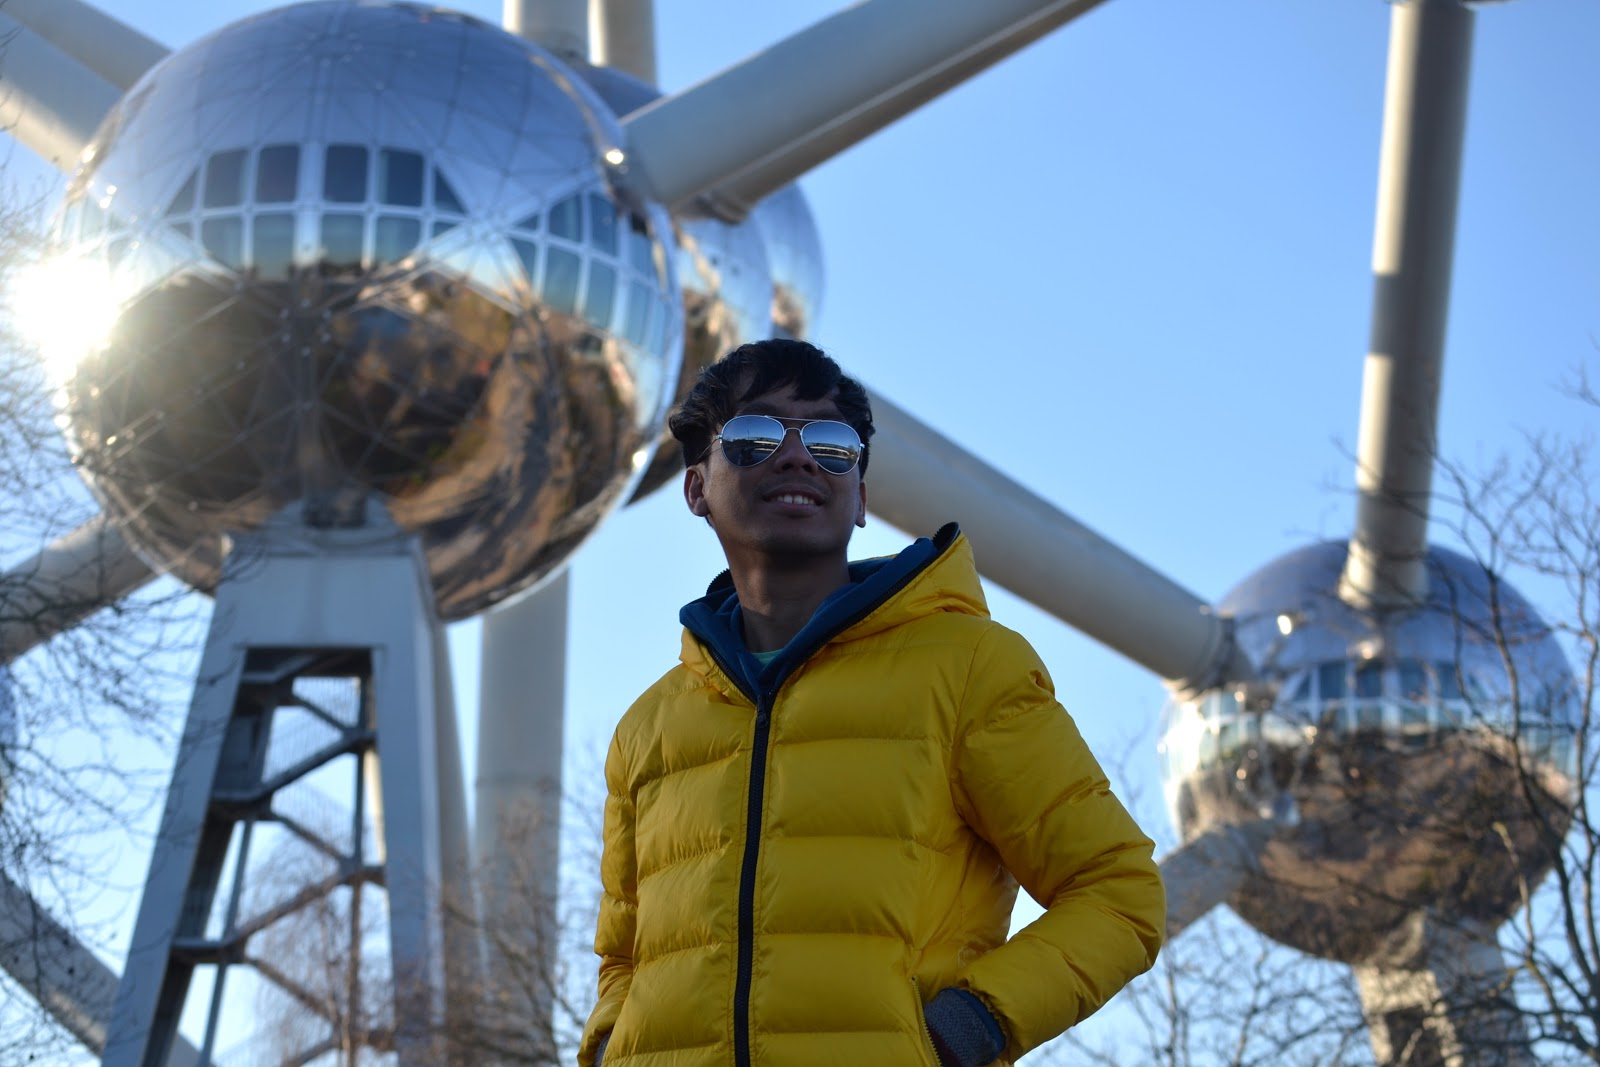 marxtermind at the Atomium Brussels